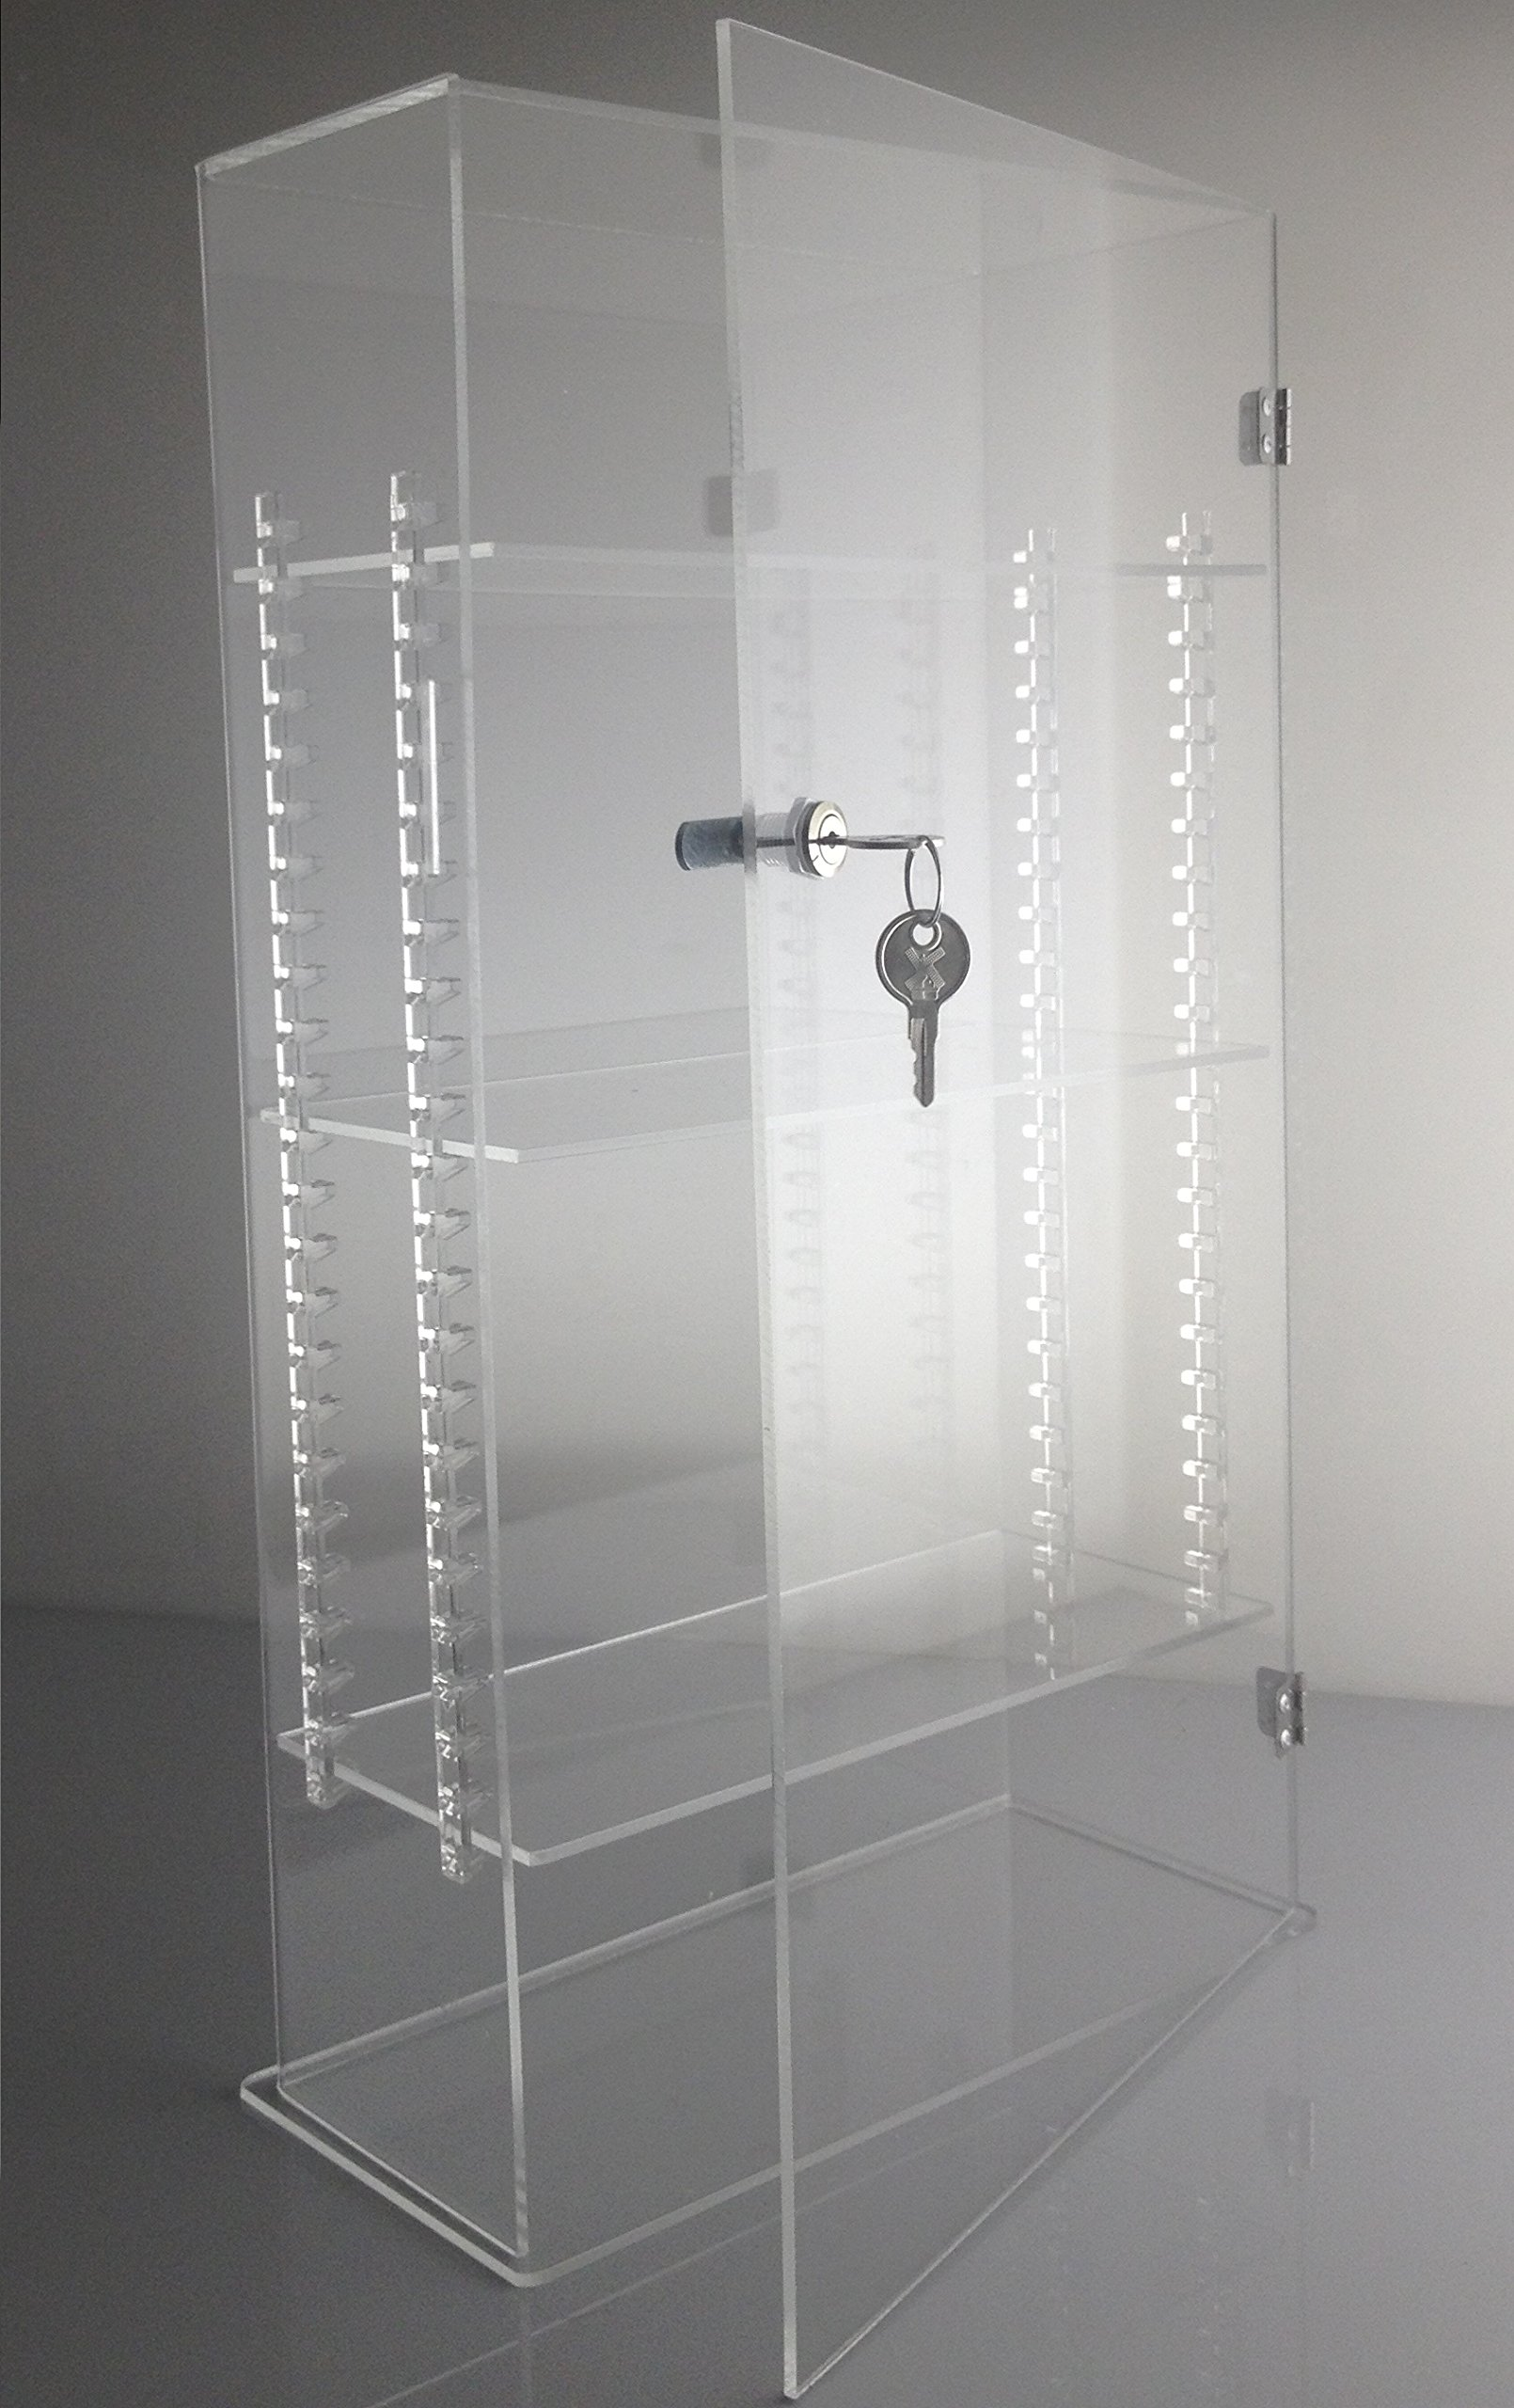 T'z Tagz Brand Acrylic Lucite Showcase with ADJUSTABLE SHELVES Jewelry Pastry Bakery Counter Display W/door & Lock (10'' X 4'' X 18.25''h) by T'z Tagz